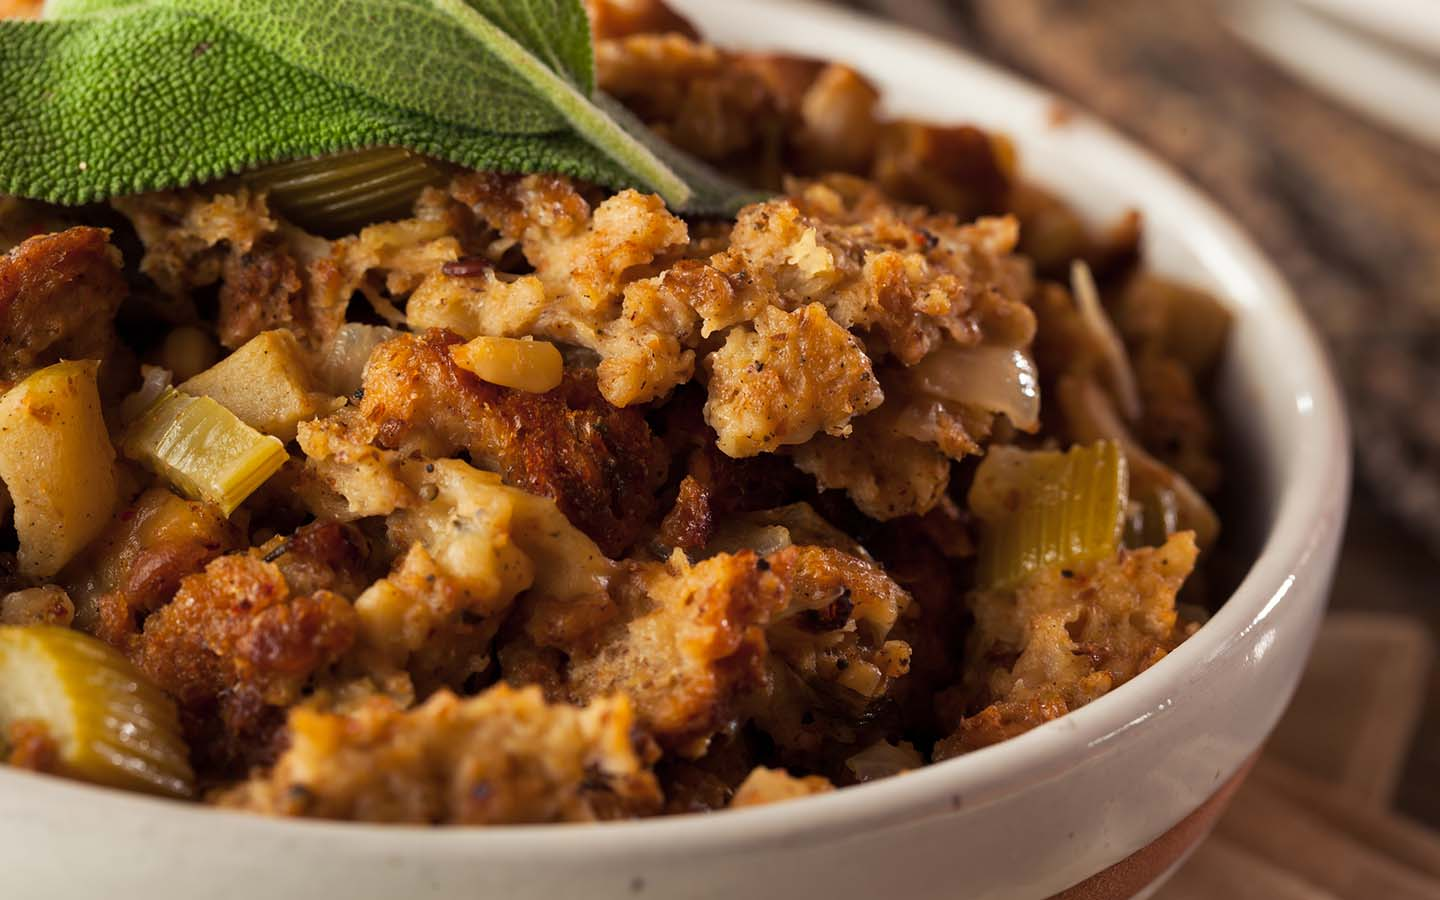 Homemade thanksgiving stuffing in a bowl